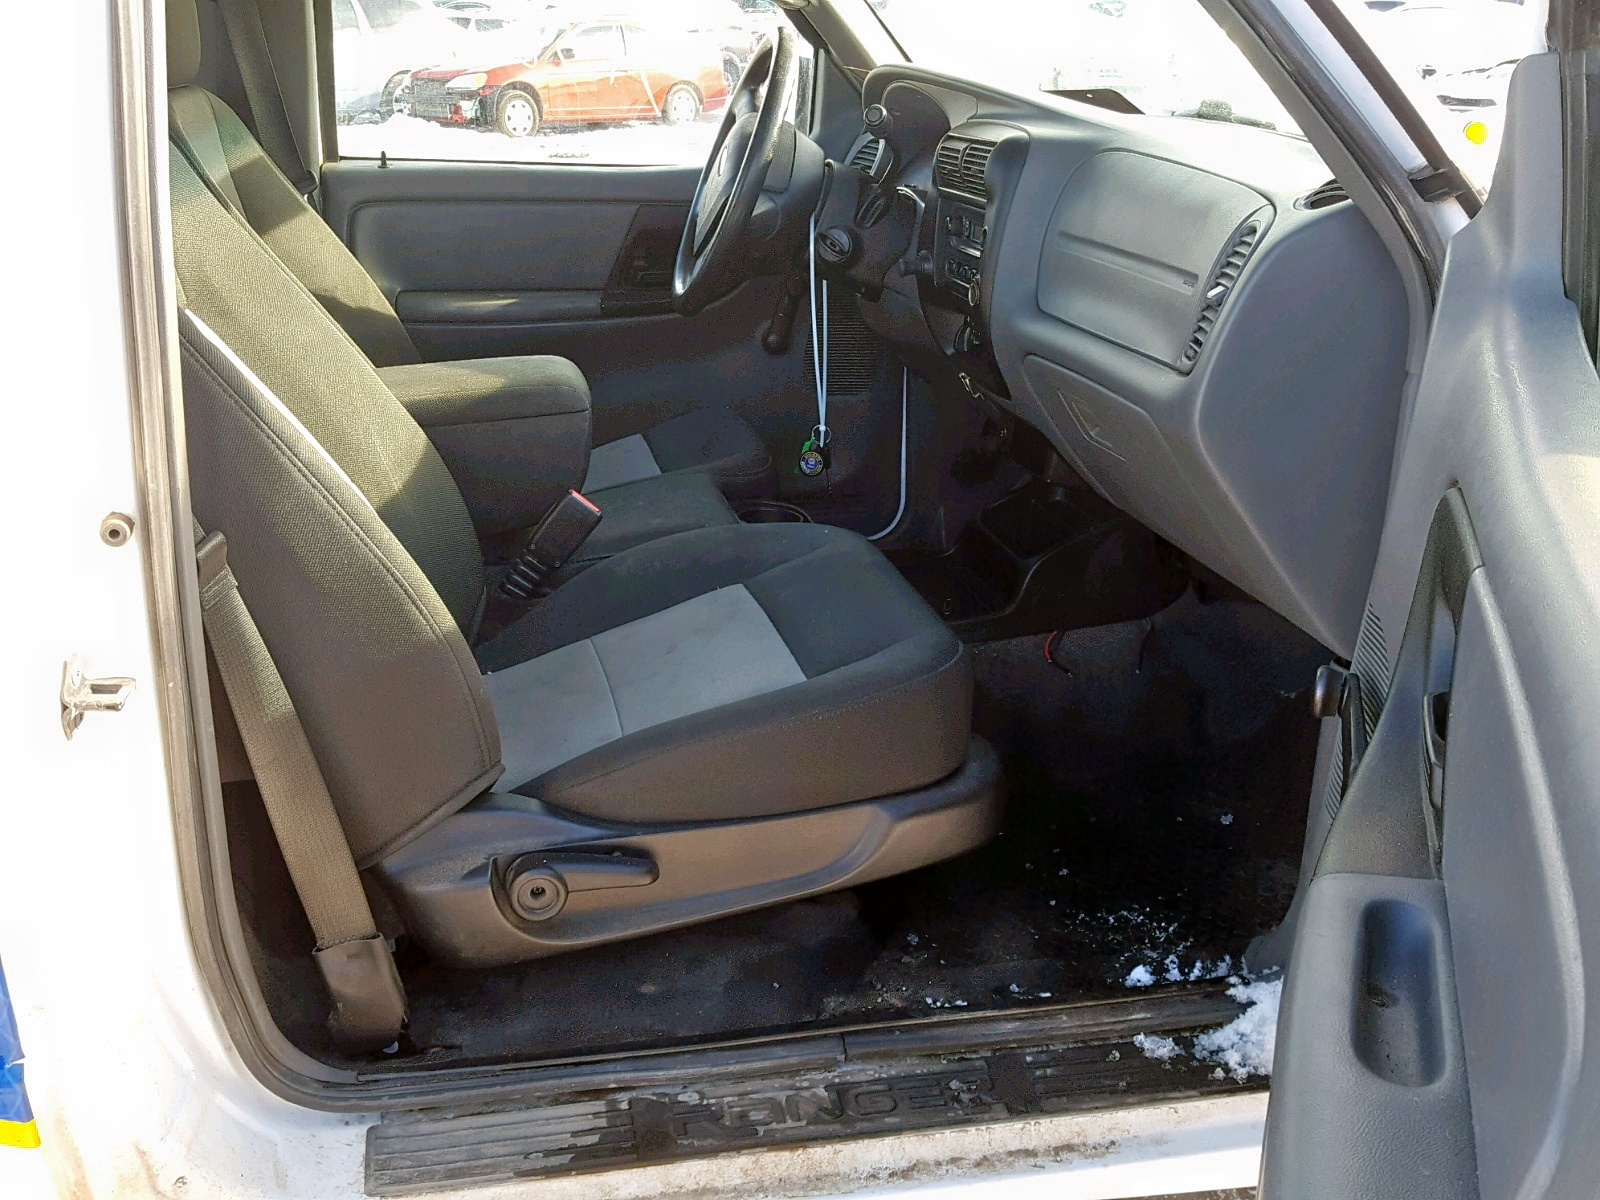 1FTKR1AD0BPA57346 - 2011 Ford Ranger 2.3L close up View